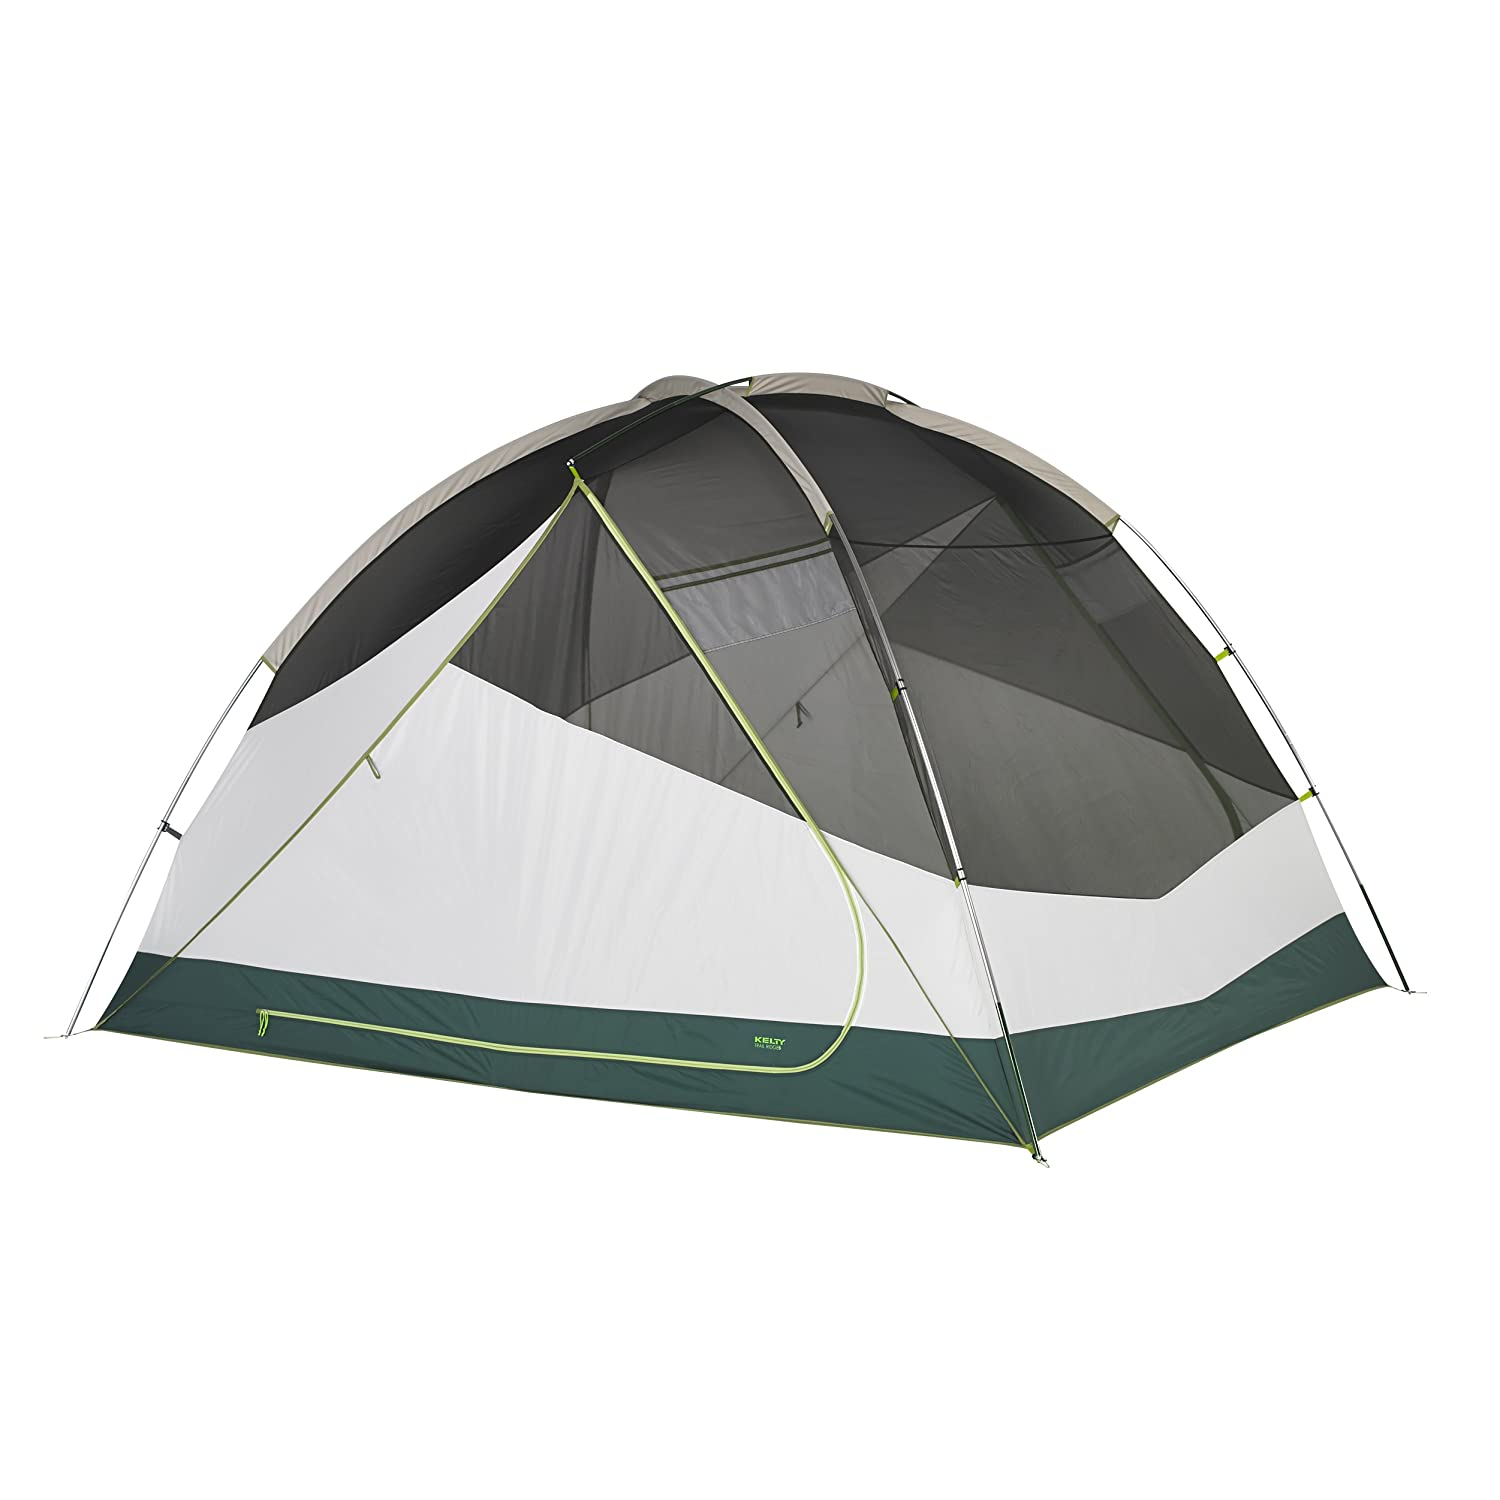 Amazon.com  Kelty Trail Ridge 6 Tent with footprint - 6 Person  Sports u0026 Outdoors  sc 1 st  Amazon.com & Amazon.com : Kelty Trail Ridge 6 Tent with footprint - 6 Person ...